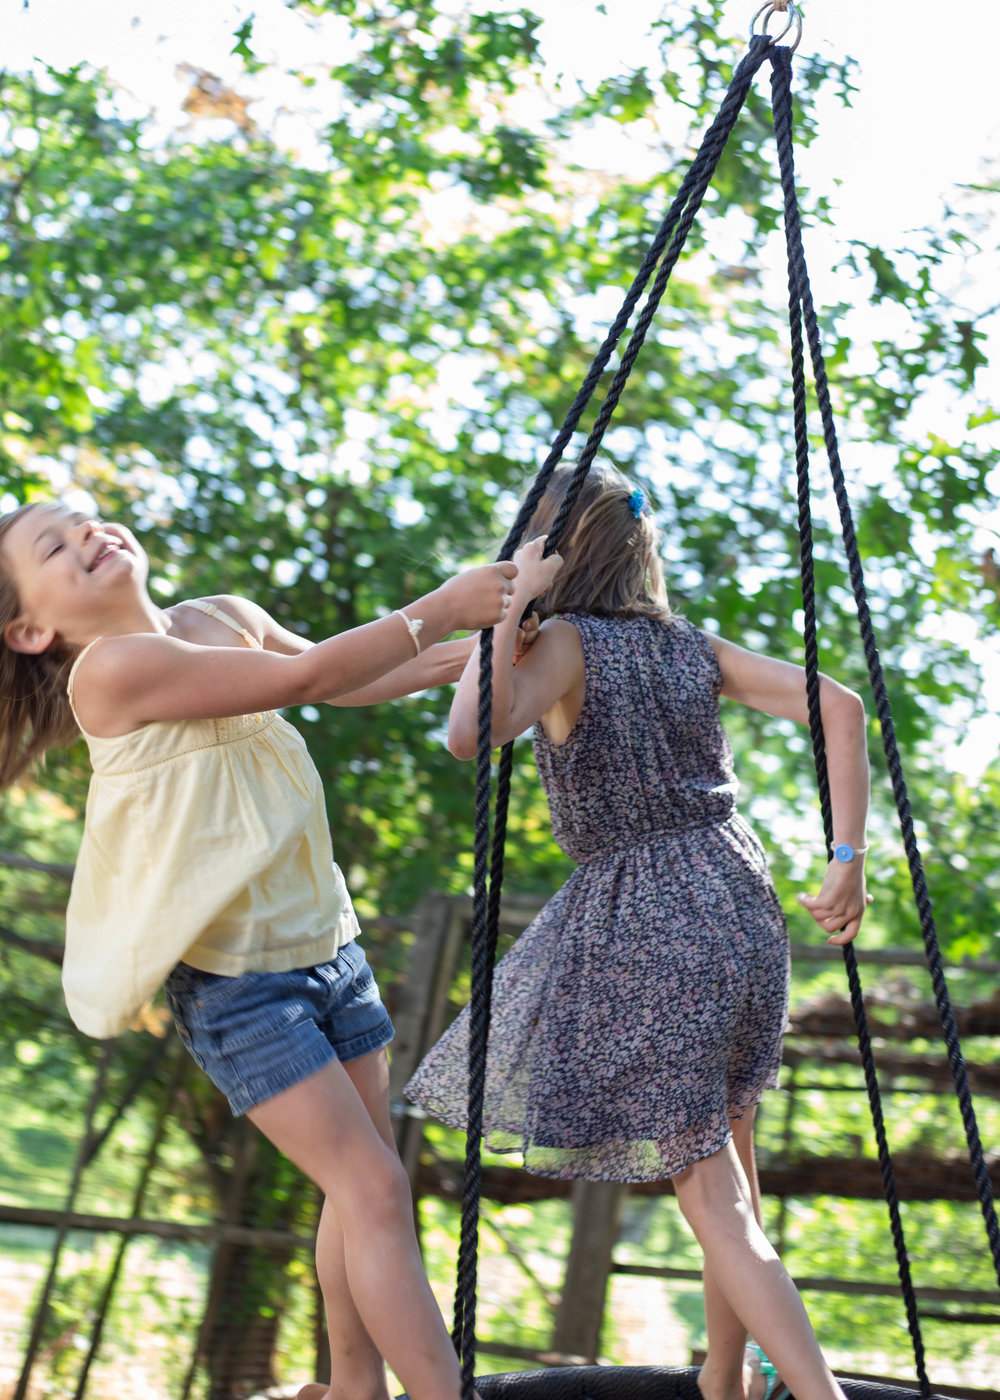 Two young sisters swinging on the tire swing outside their home under the trees